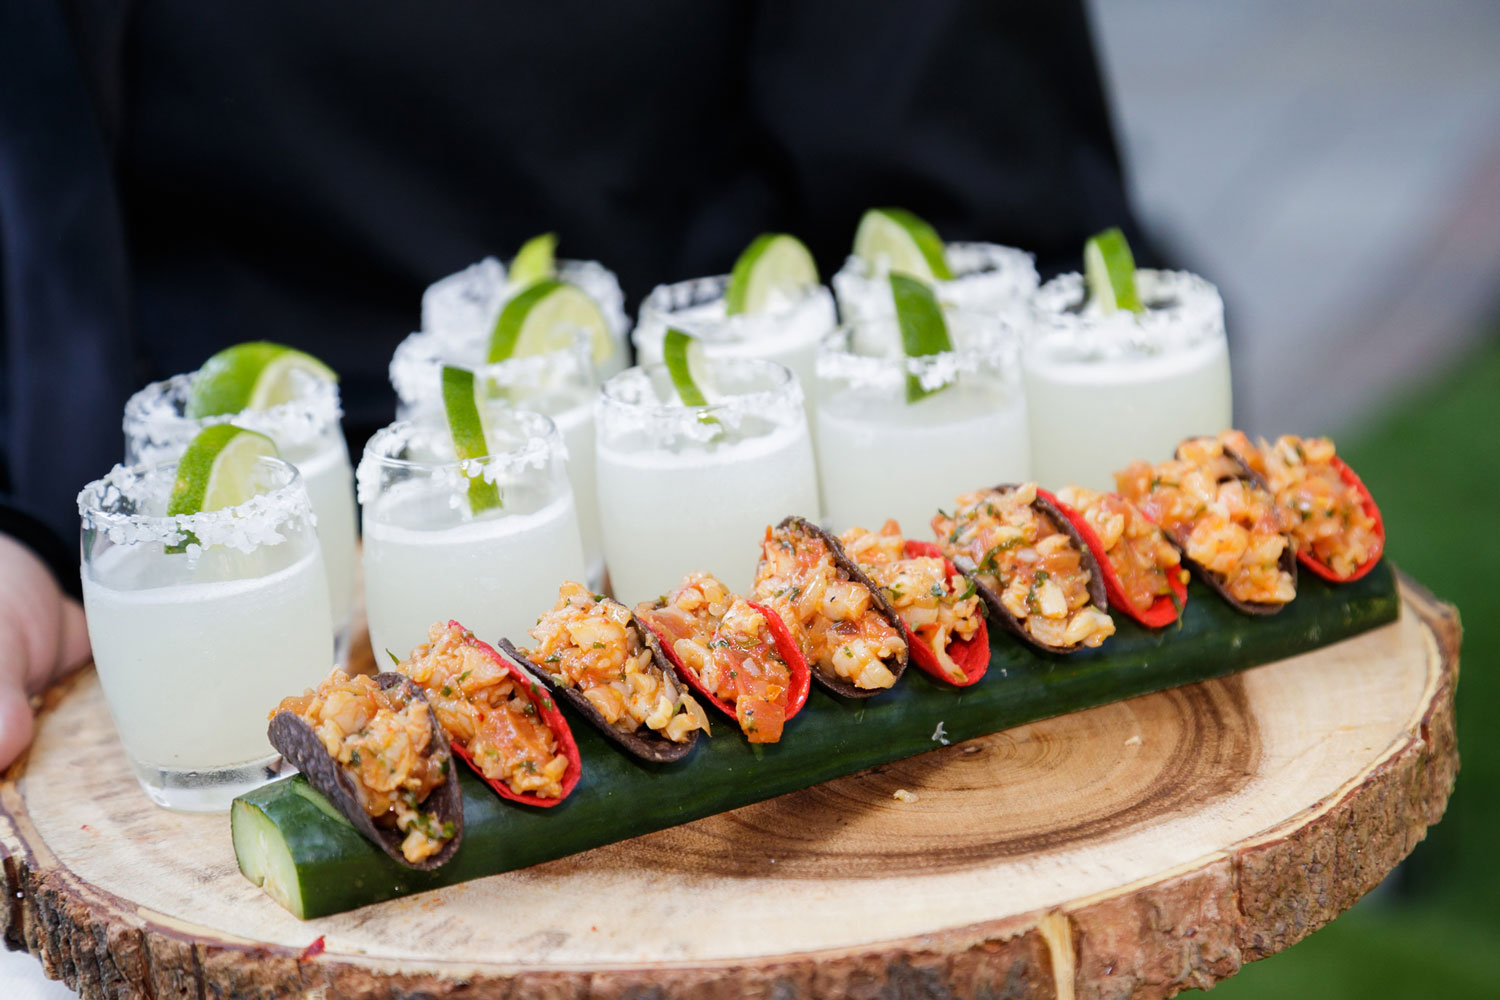 Wedding reception mexican food appetizer hors d'oeuvres margaritas and tacos in limes